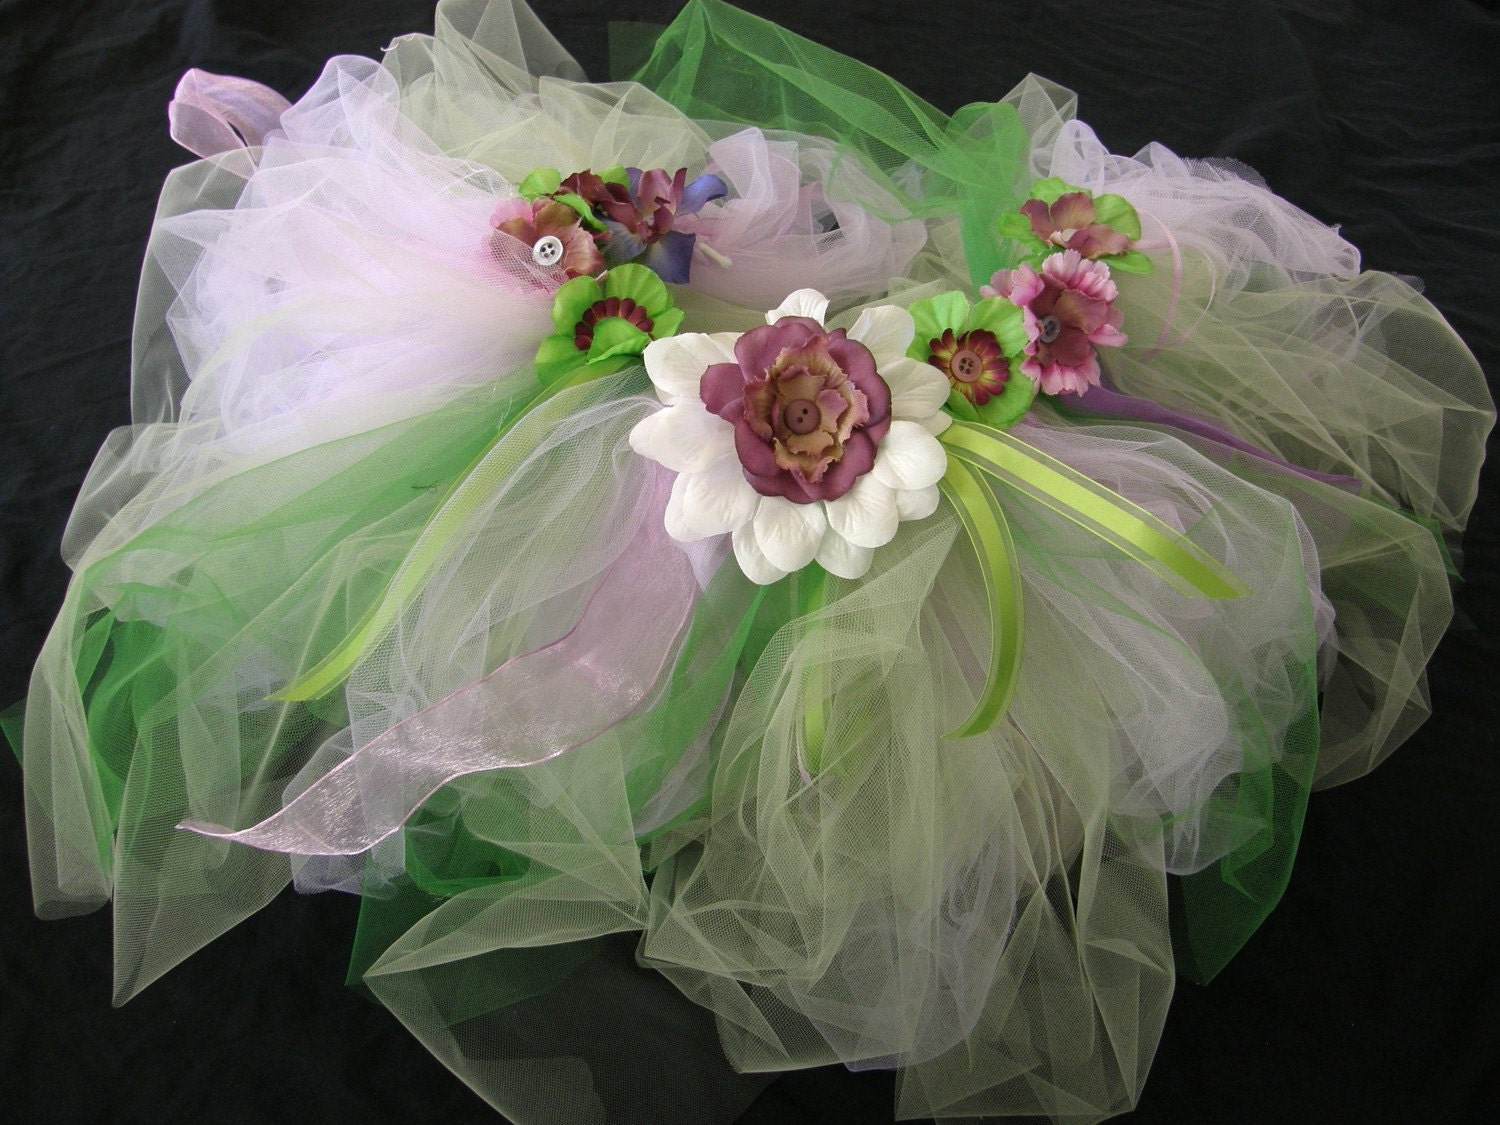 Unique and one of a kind - Fairy, princess, or butterfly purple and lime green tutu fits baby or girl- sizes available 12 months to size 6 - every little girls dream